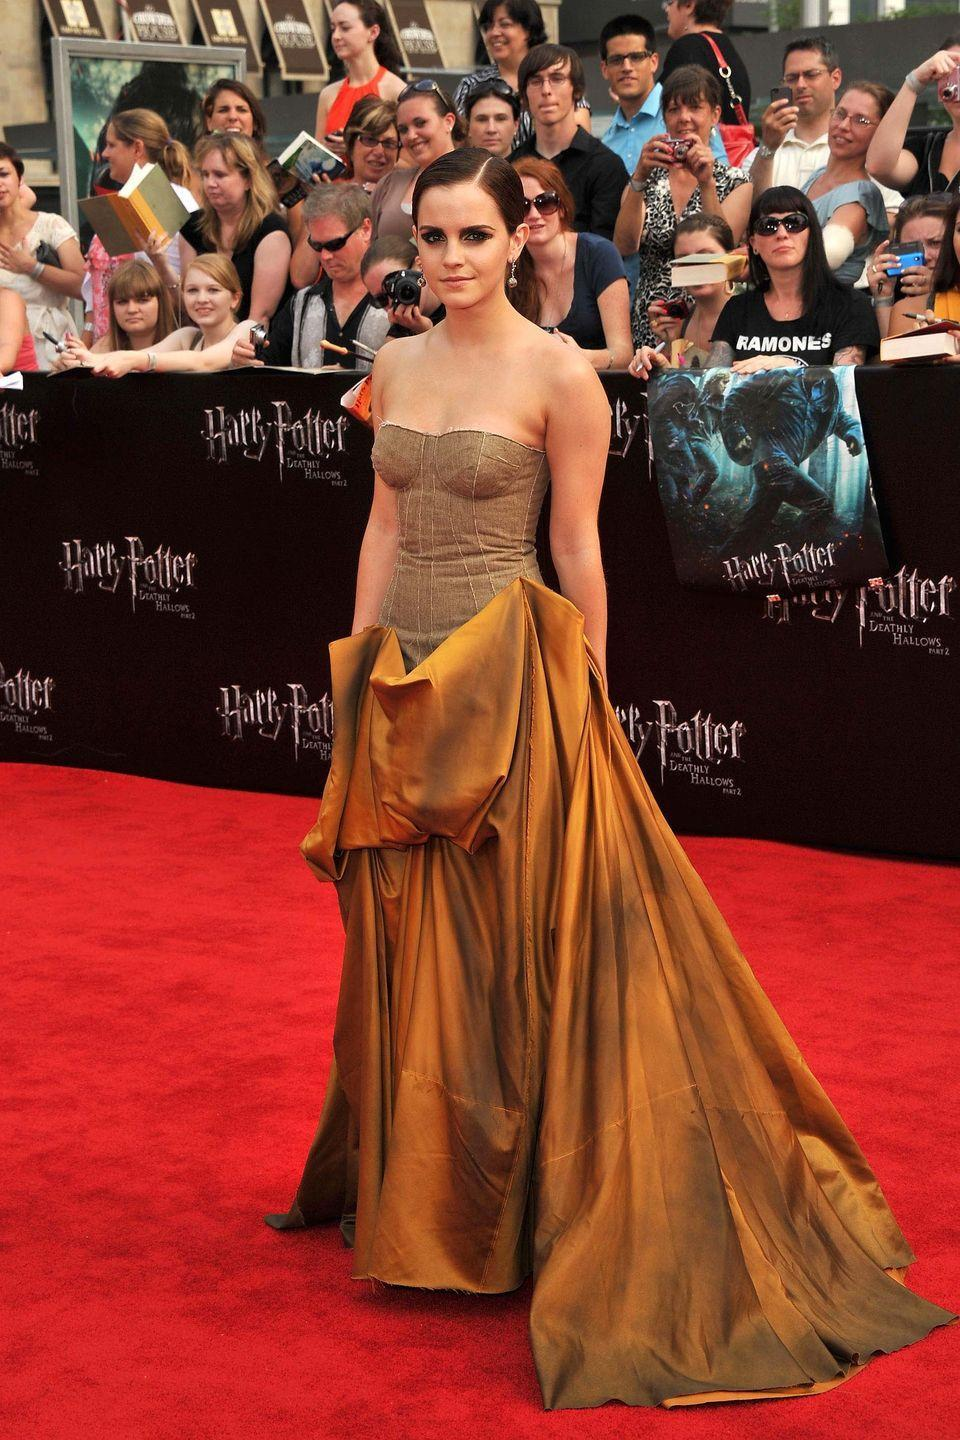 <p>Who knows? Maybe it was this golden gown that Emma Watson wore to the 2011 premiere of <em>Harry Potter and the Deathly Hallows: Part 2</em> that convinced Disney to cast her as Belle in the live-action version of <em>Beauty and the Beast</em>, which came out in 2017.</p>